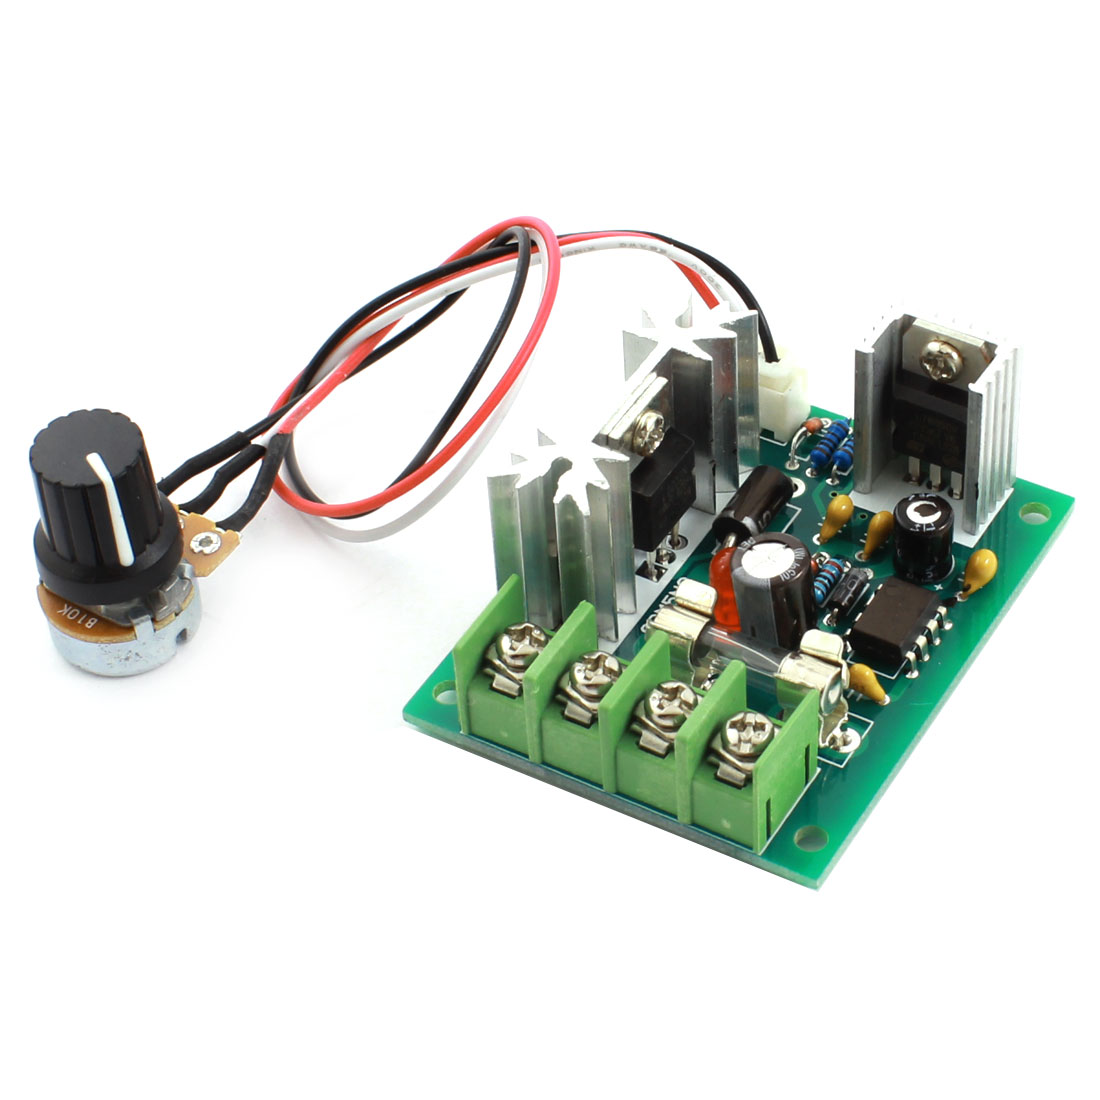 DC 10-30V 120W Potentiometer Adjustable Pulse Width Modulation PWM Motor Speed Controller Governor